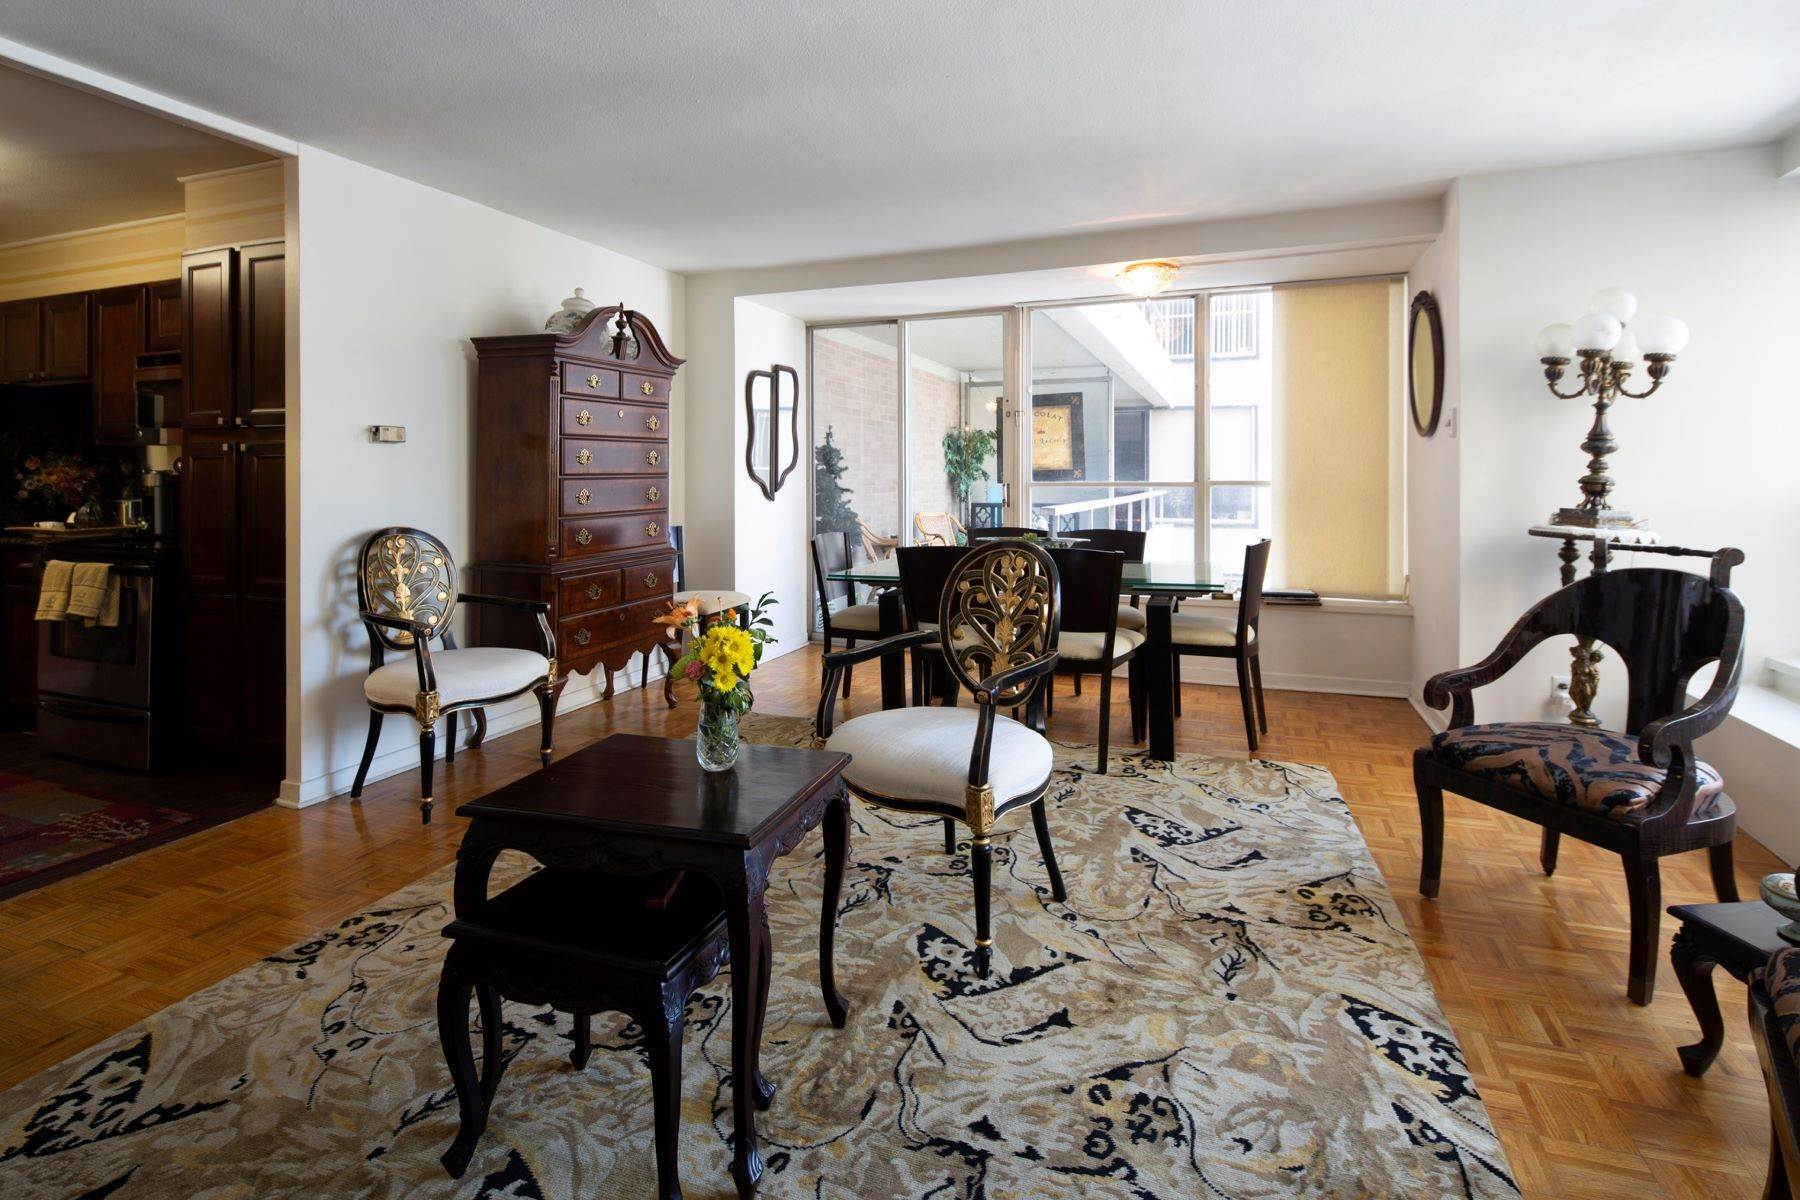 4. Apartments for Sale at 224-226 W RITTENHOUSE SQ #2001-2, 2001-2 Philadelphia, Pennsylvania 19103 United States